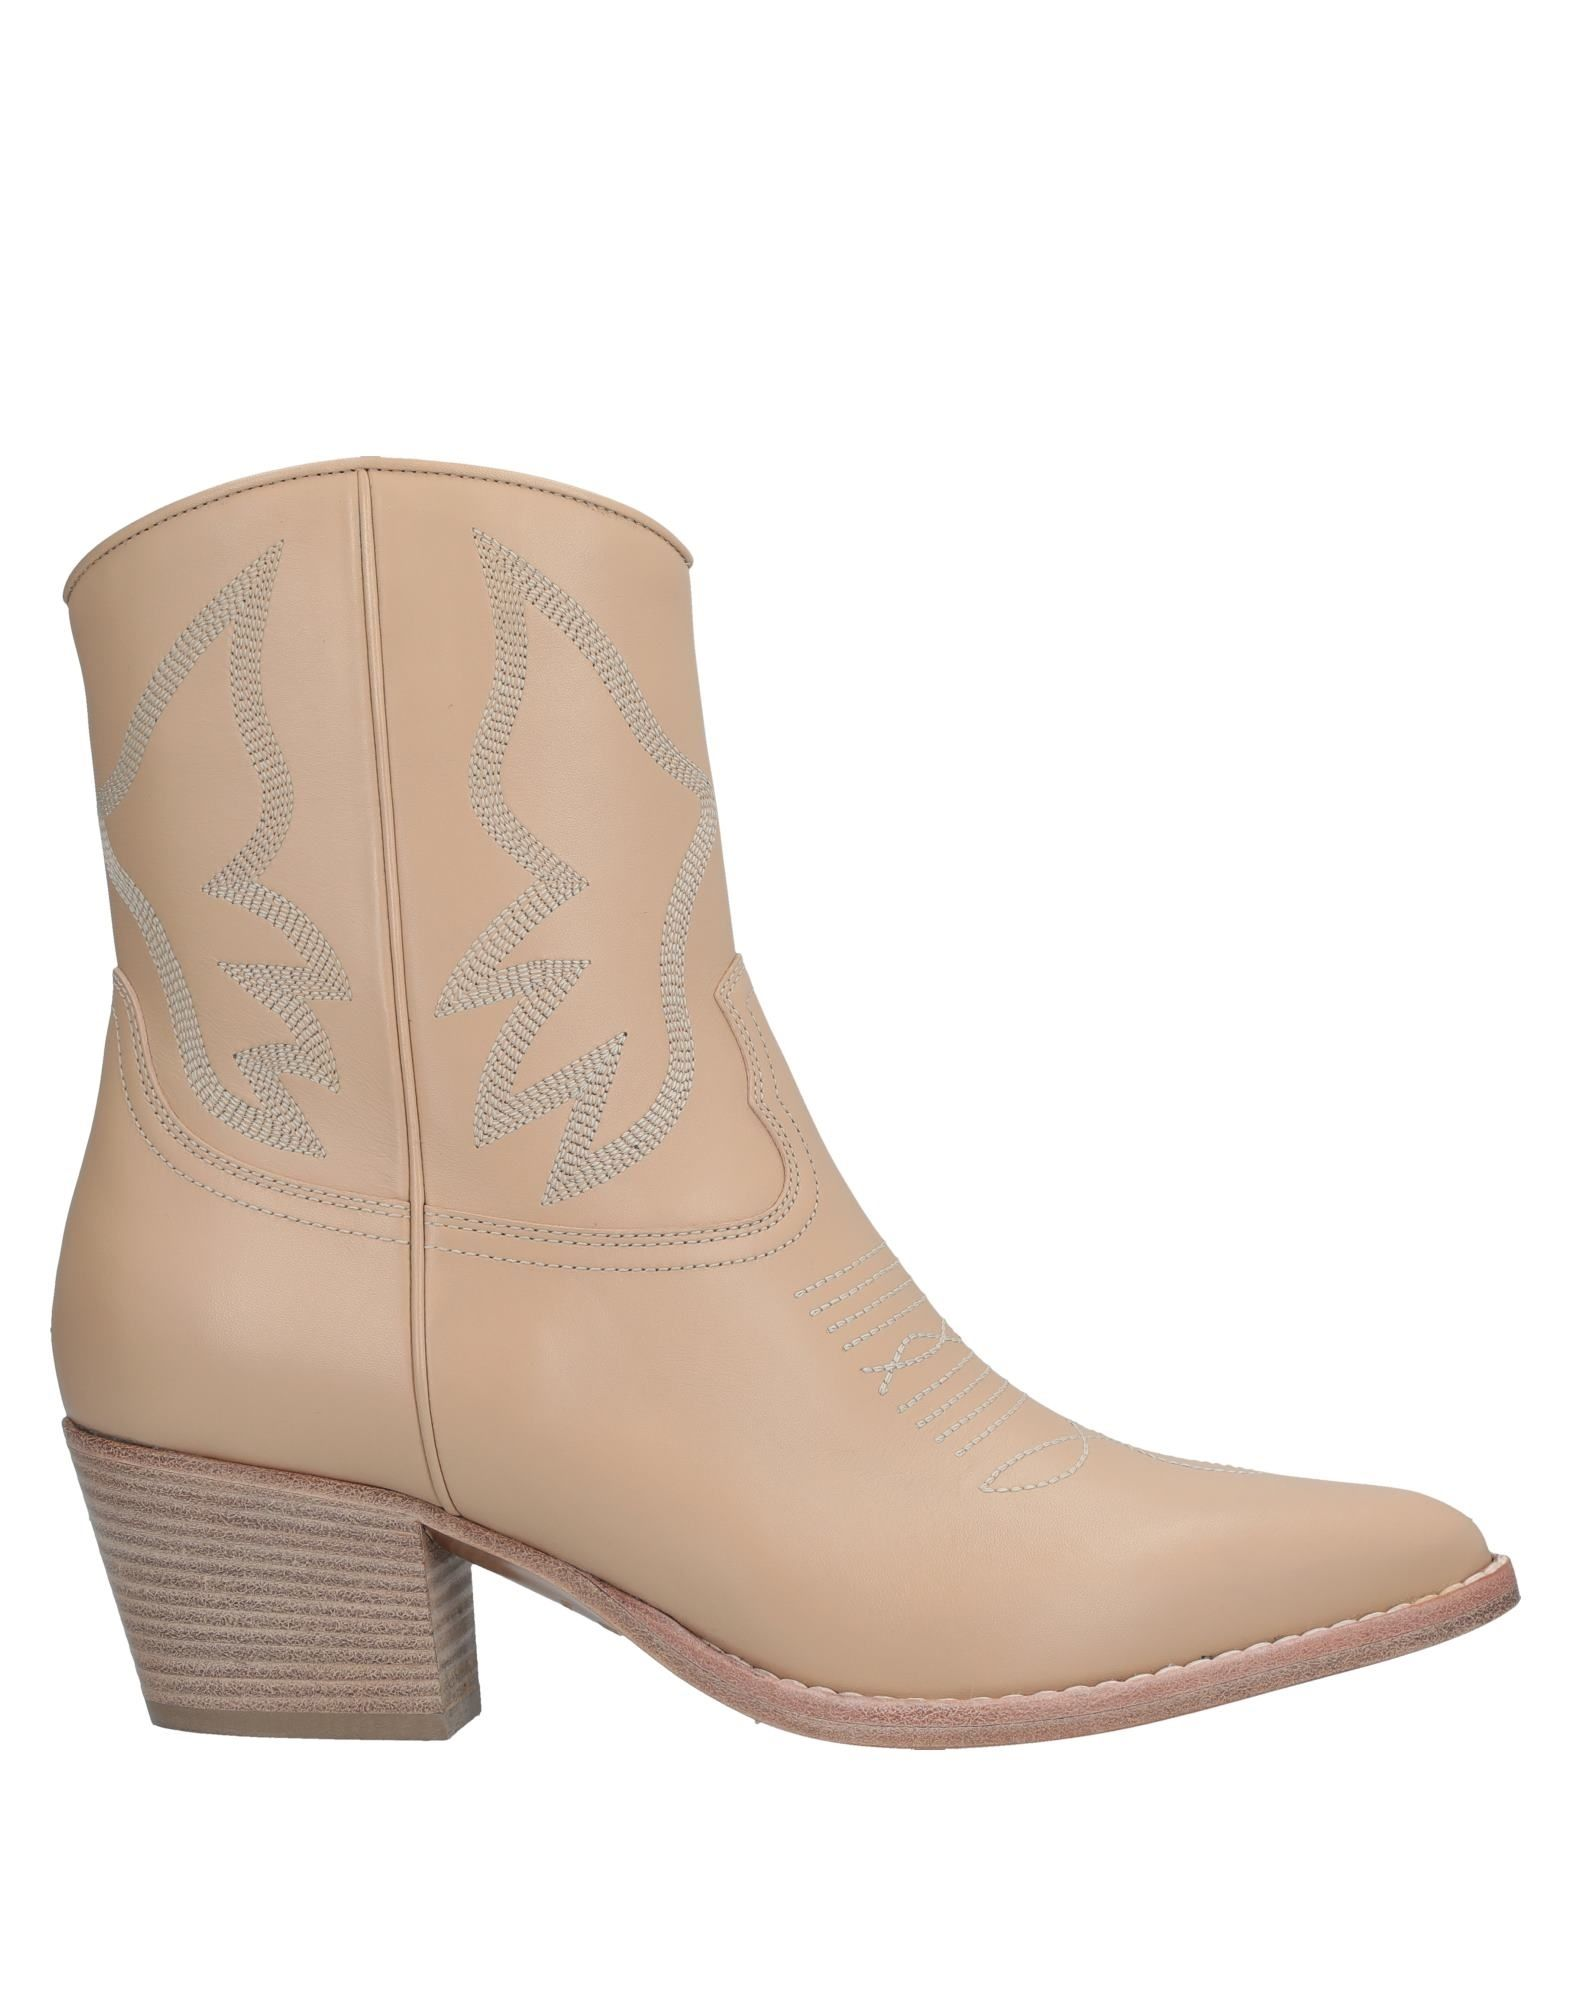 Woman Texan Embroidered Leather Ankle Boots Beige